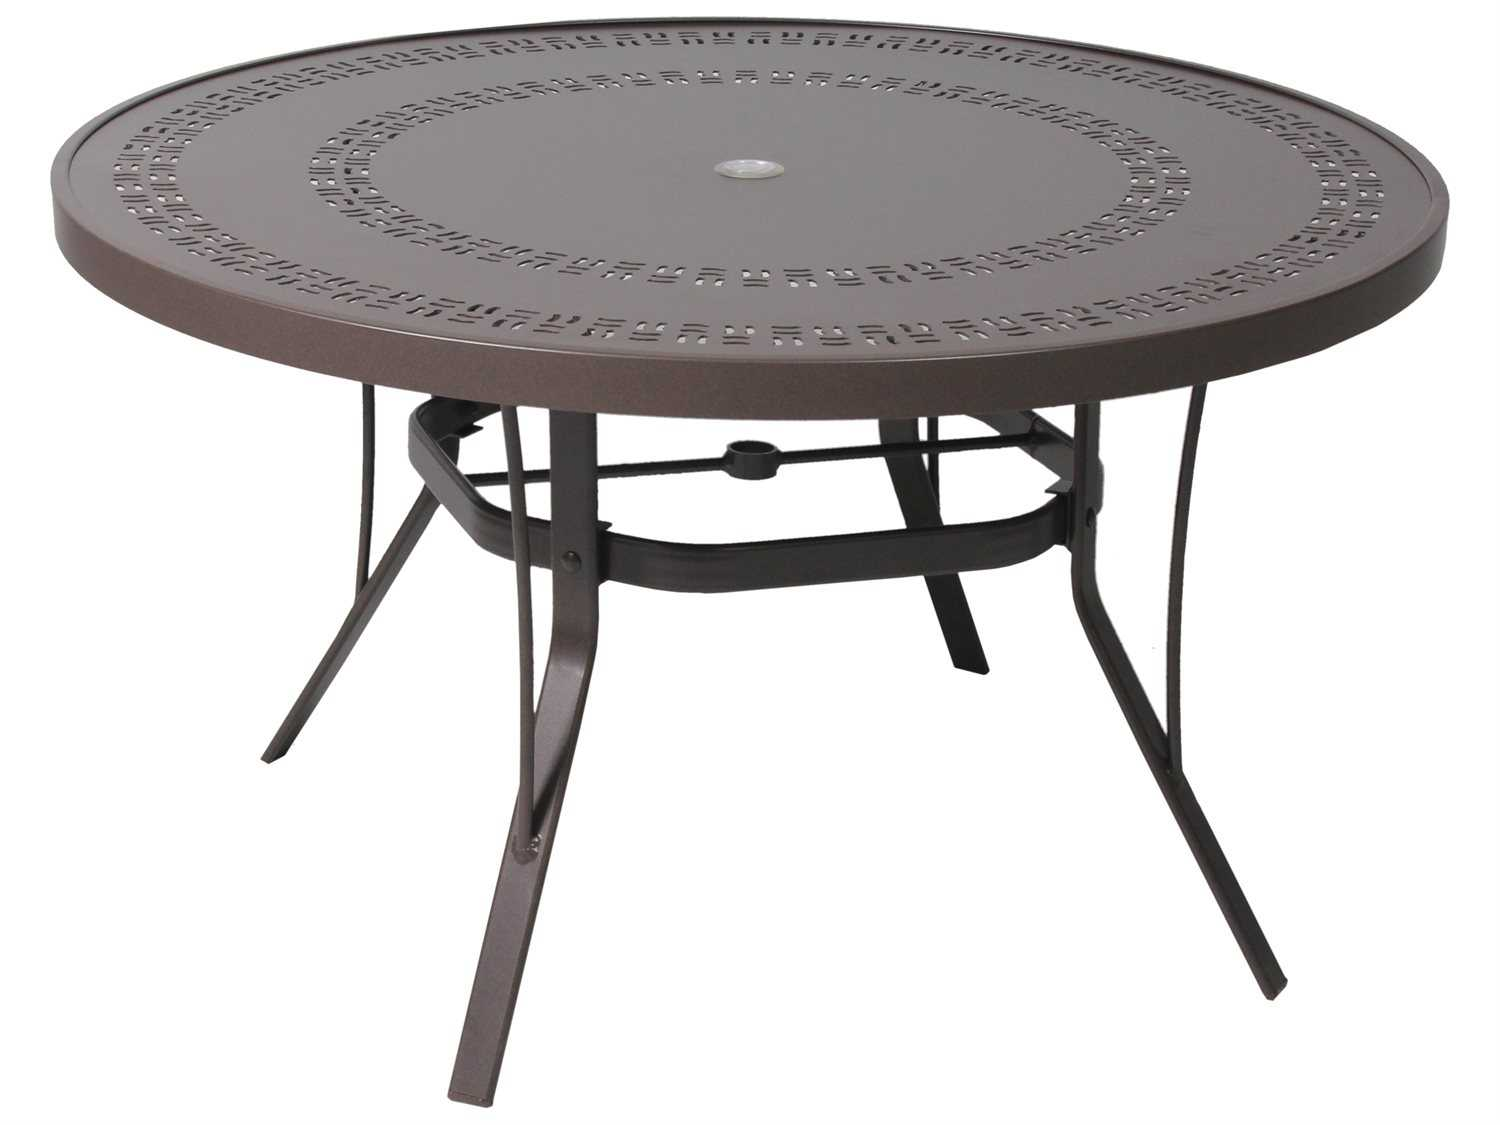 Suncoast Patterned Square Aluminum 42 Round Dining Table